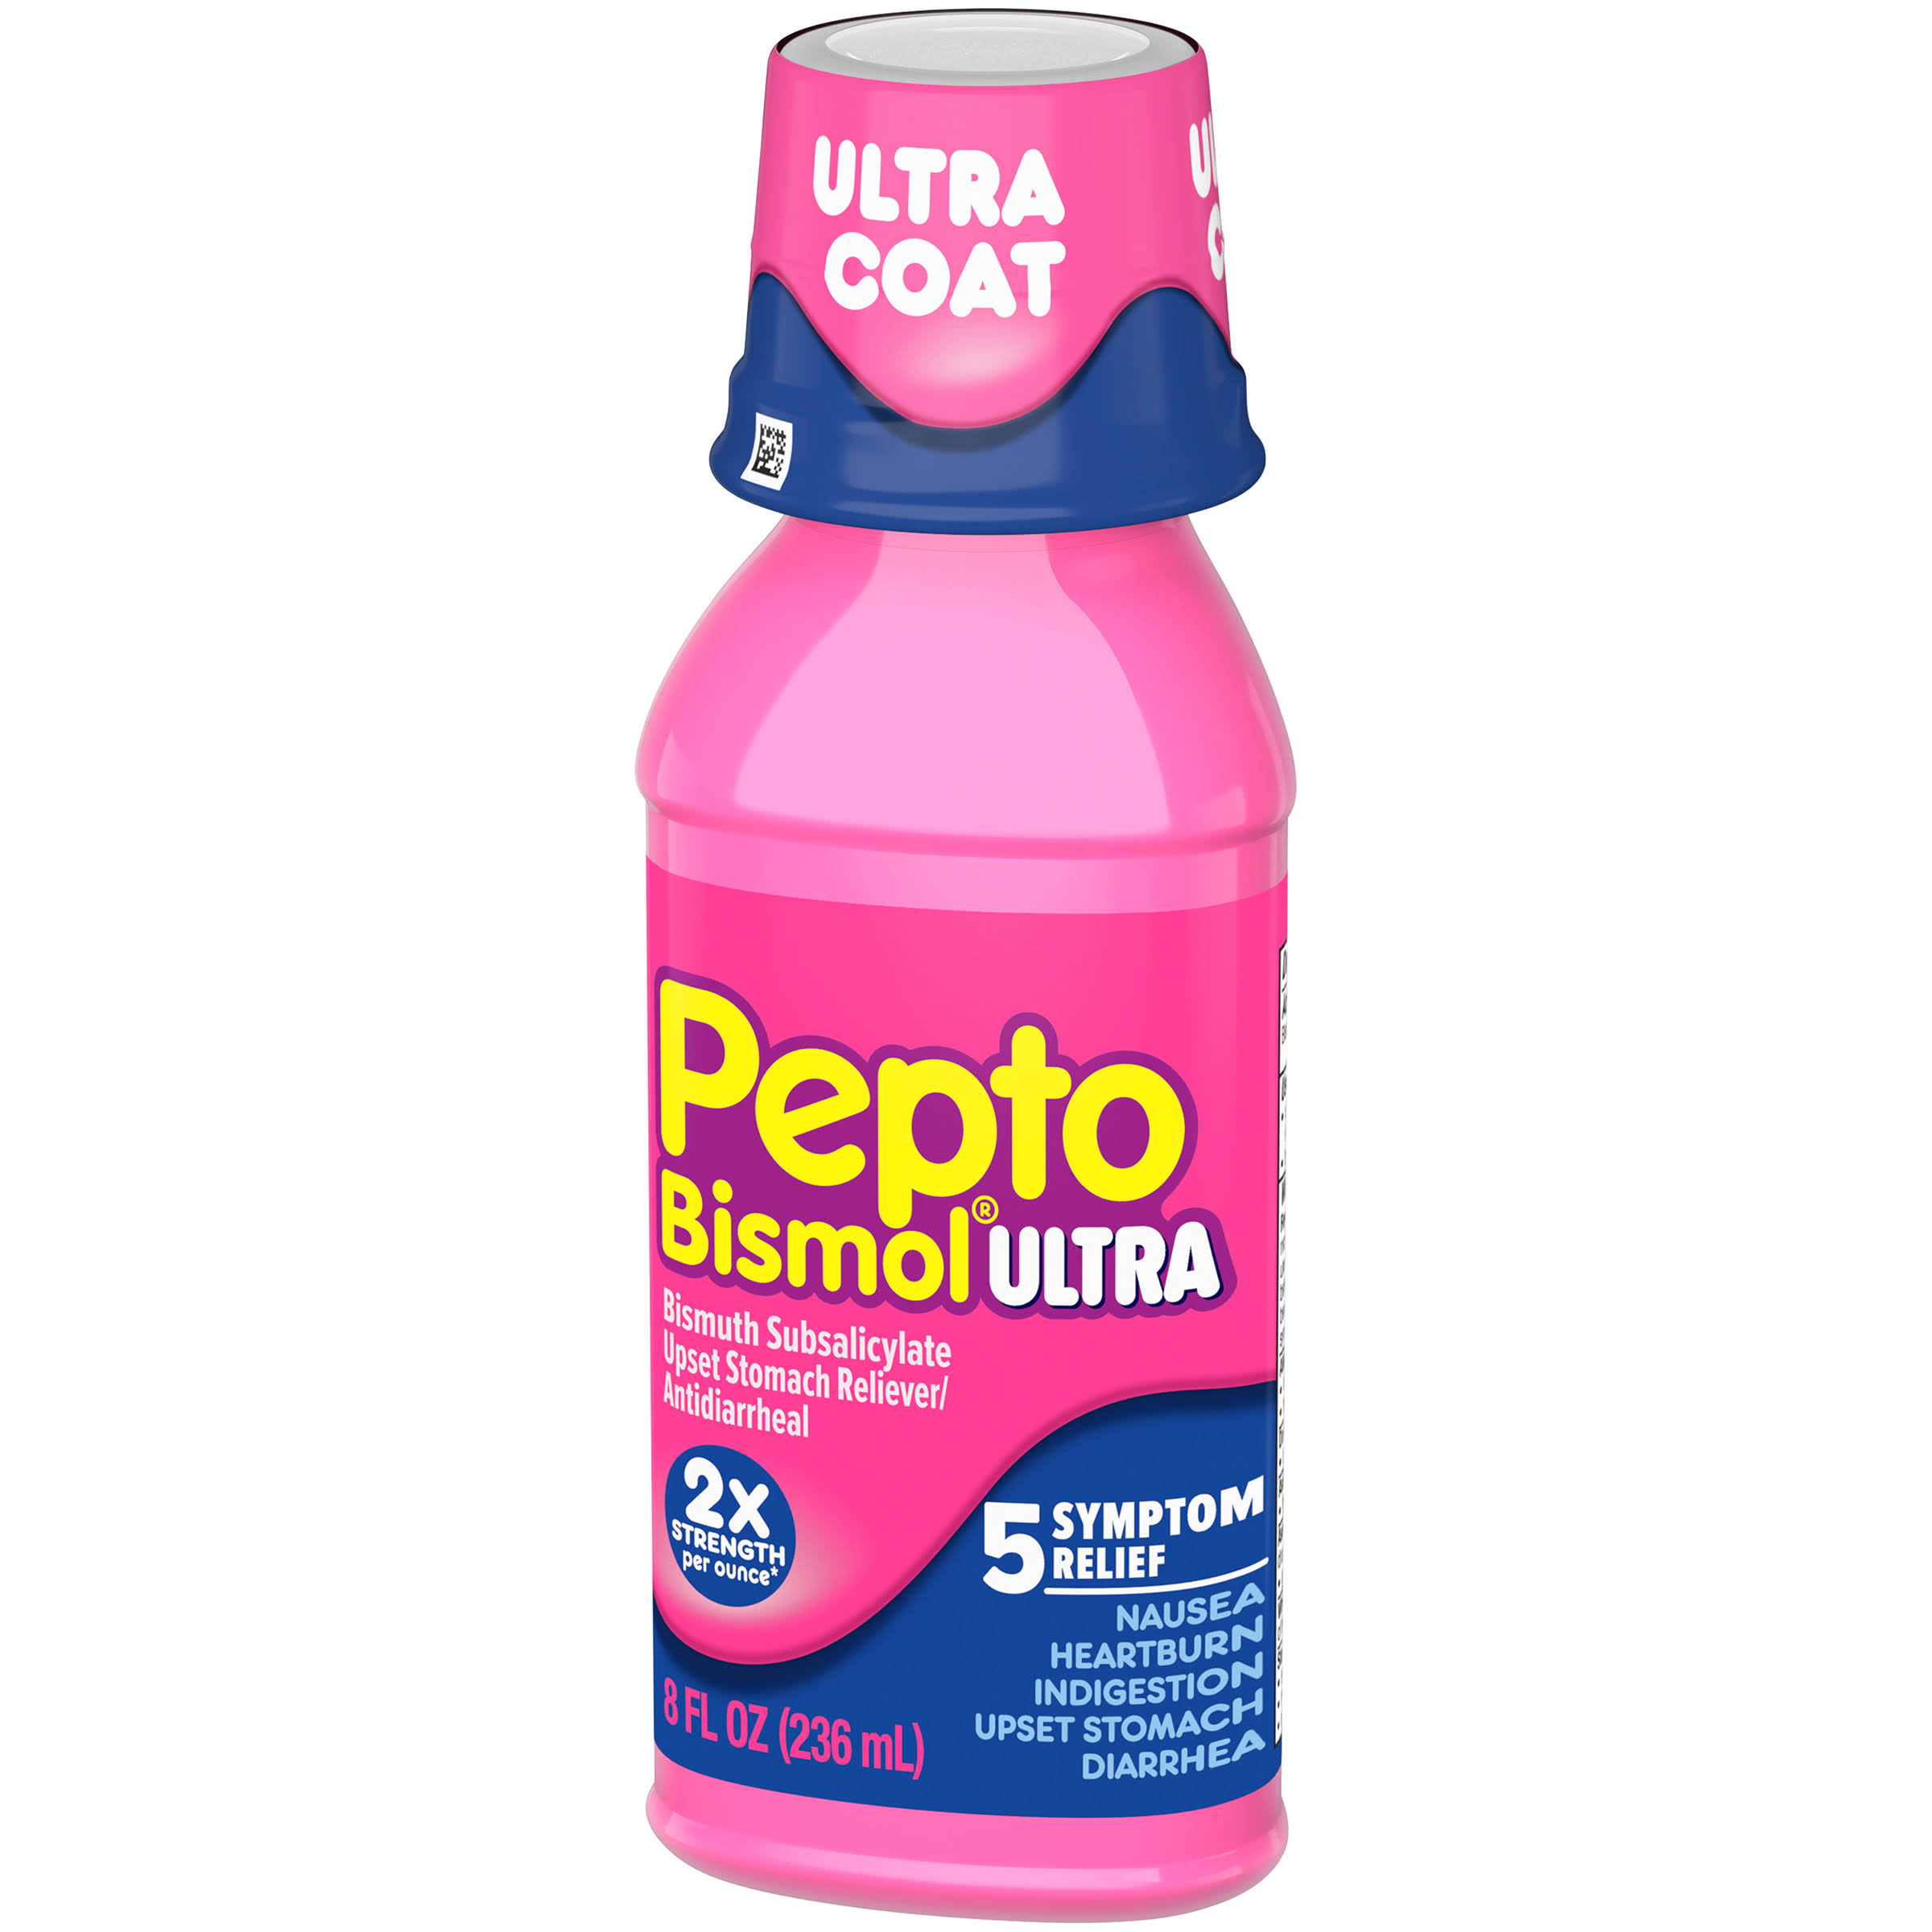 Pepto-Bismol Max Strength Bismuth Subsalicylate Upset Stomach Reliever Antidiarrheal - 8oz